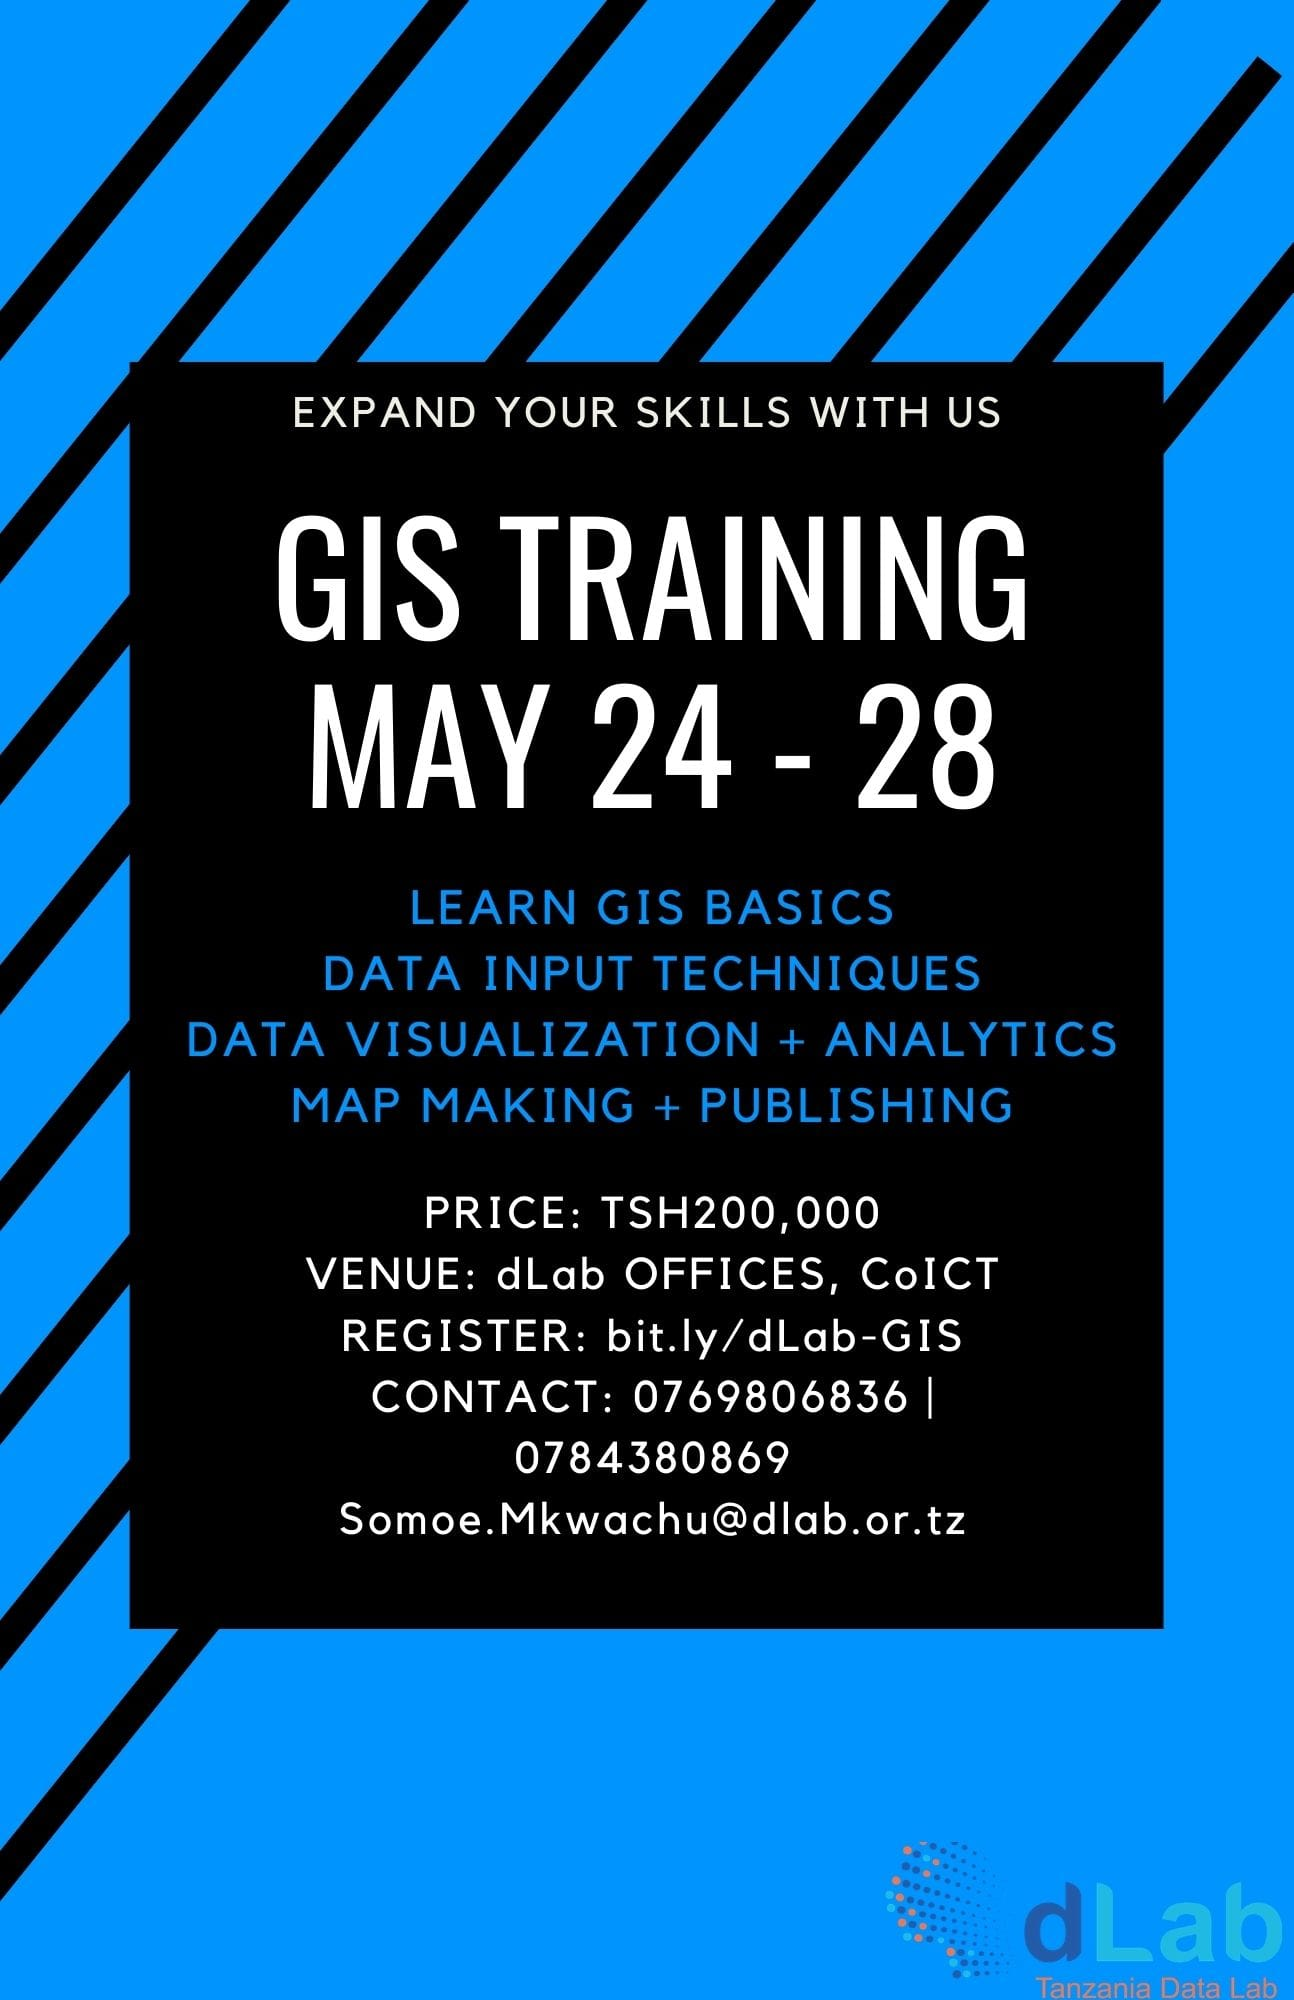 dLab is hosting a GIS Training this May, sign up!